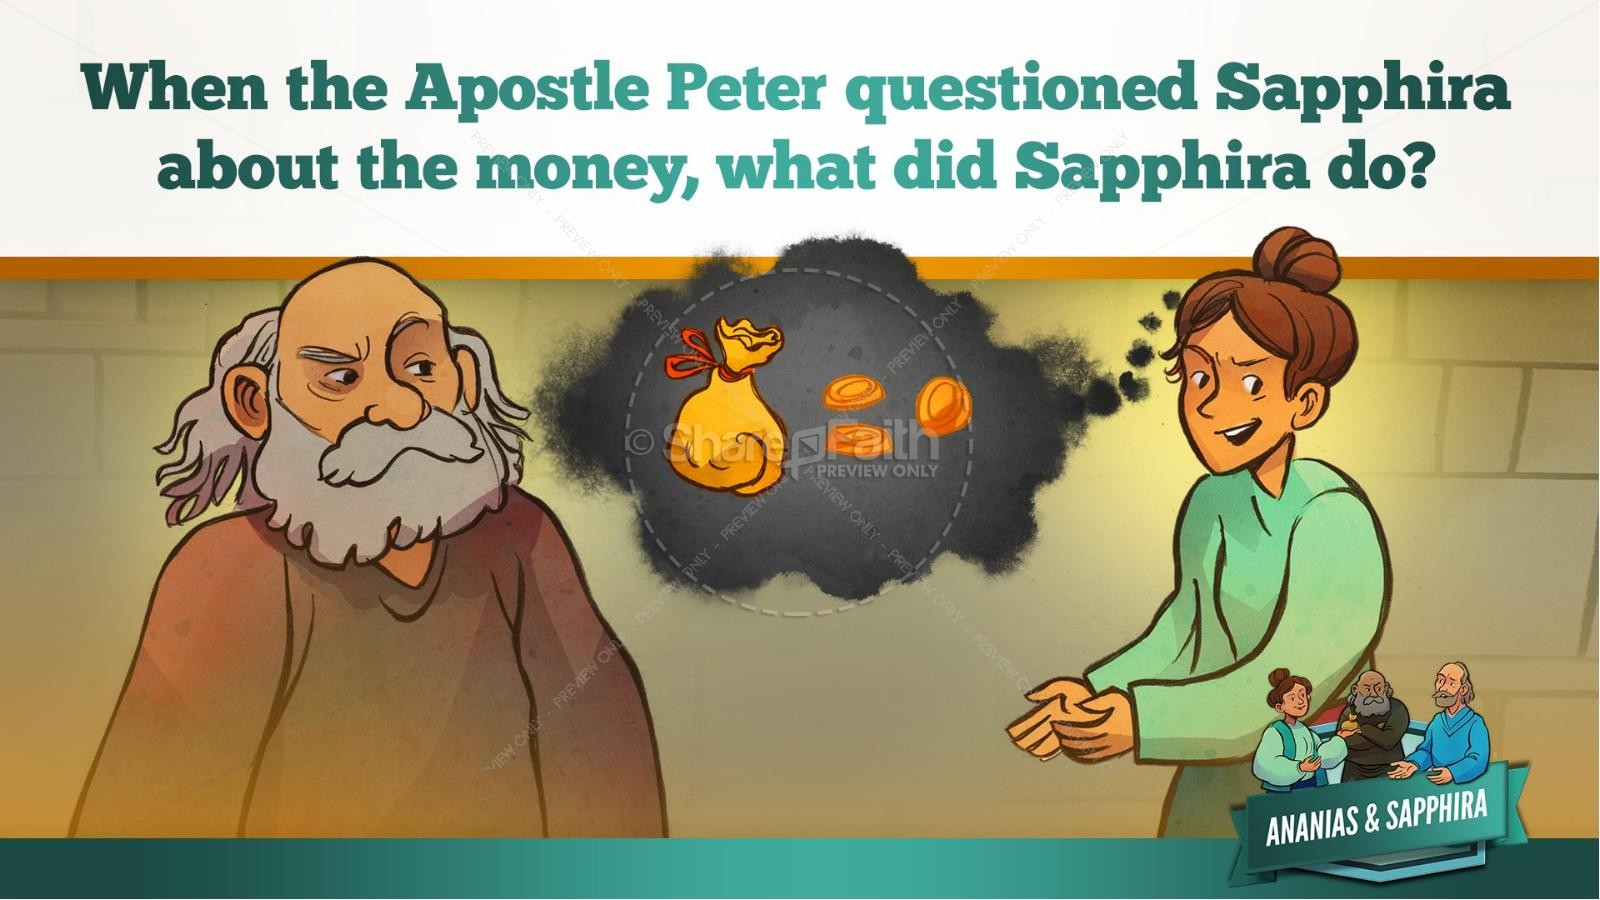 Acts 5 Ananias and Sapphira Kids Bible Stories | slide 33